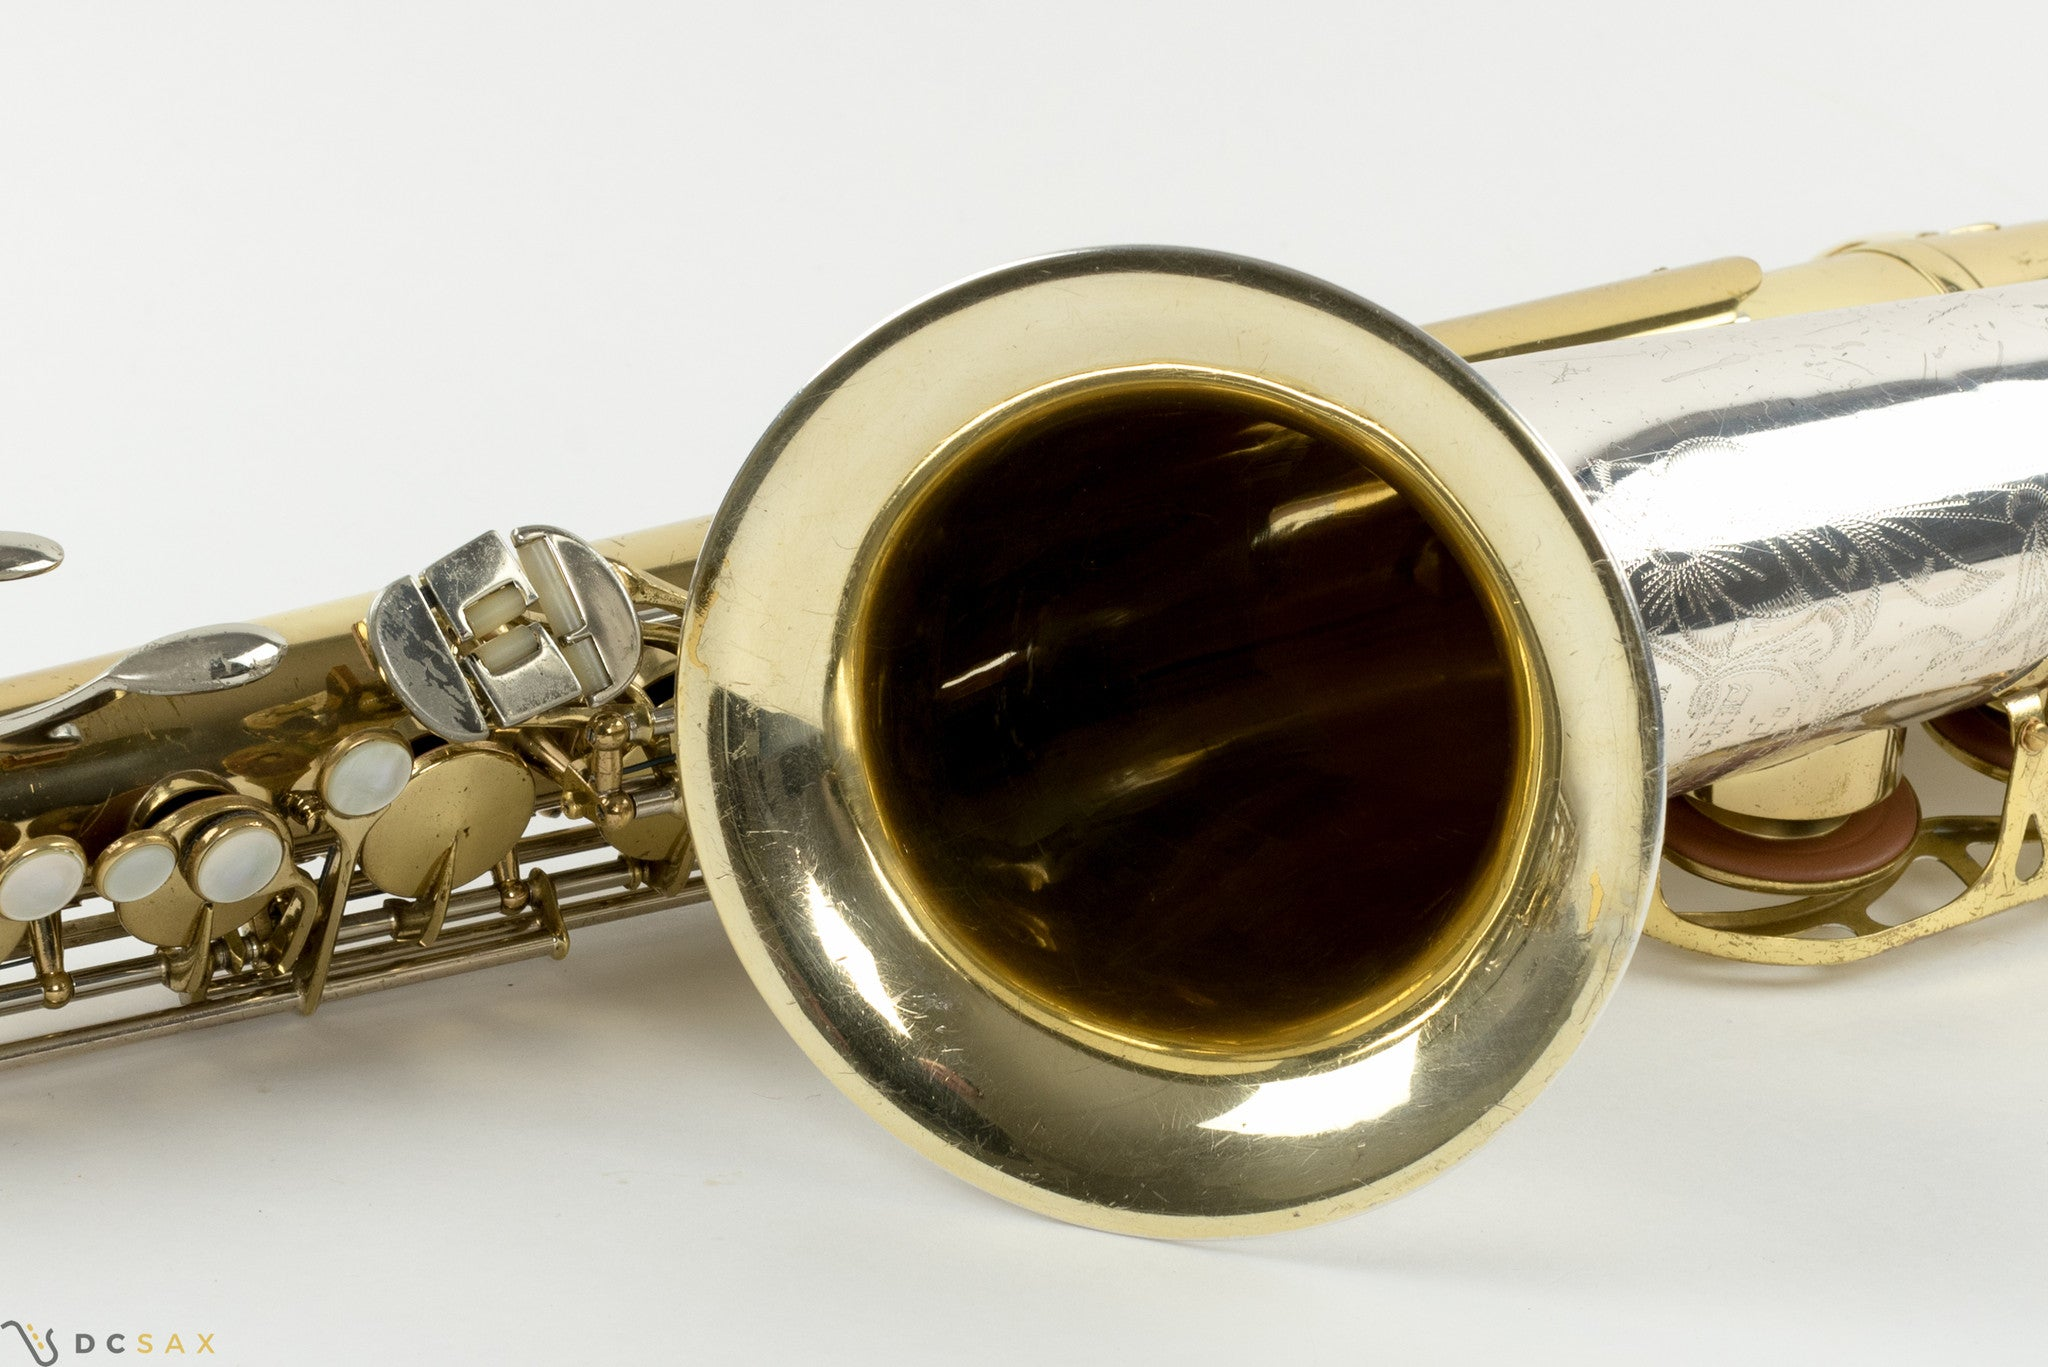 King Super 20 Silver Sonic Tenor Saxophone, Cleveland, Original Lacquer, Fresh Overhaul